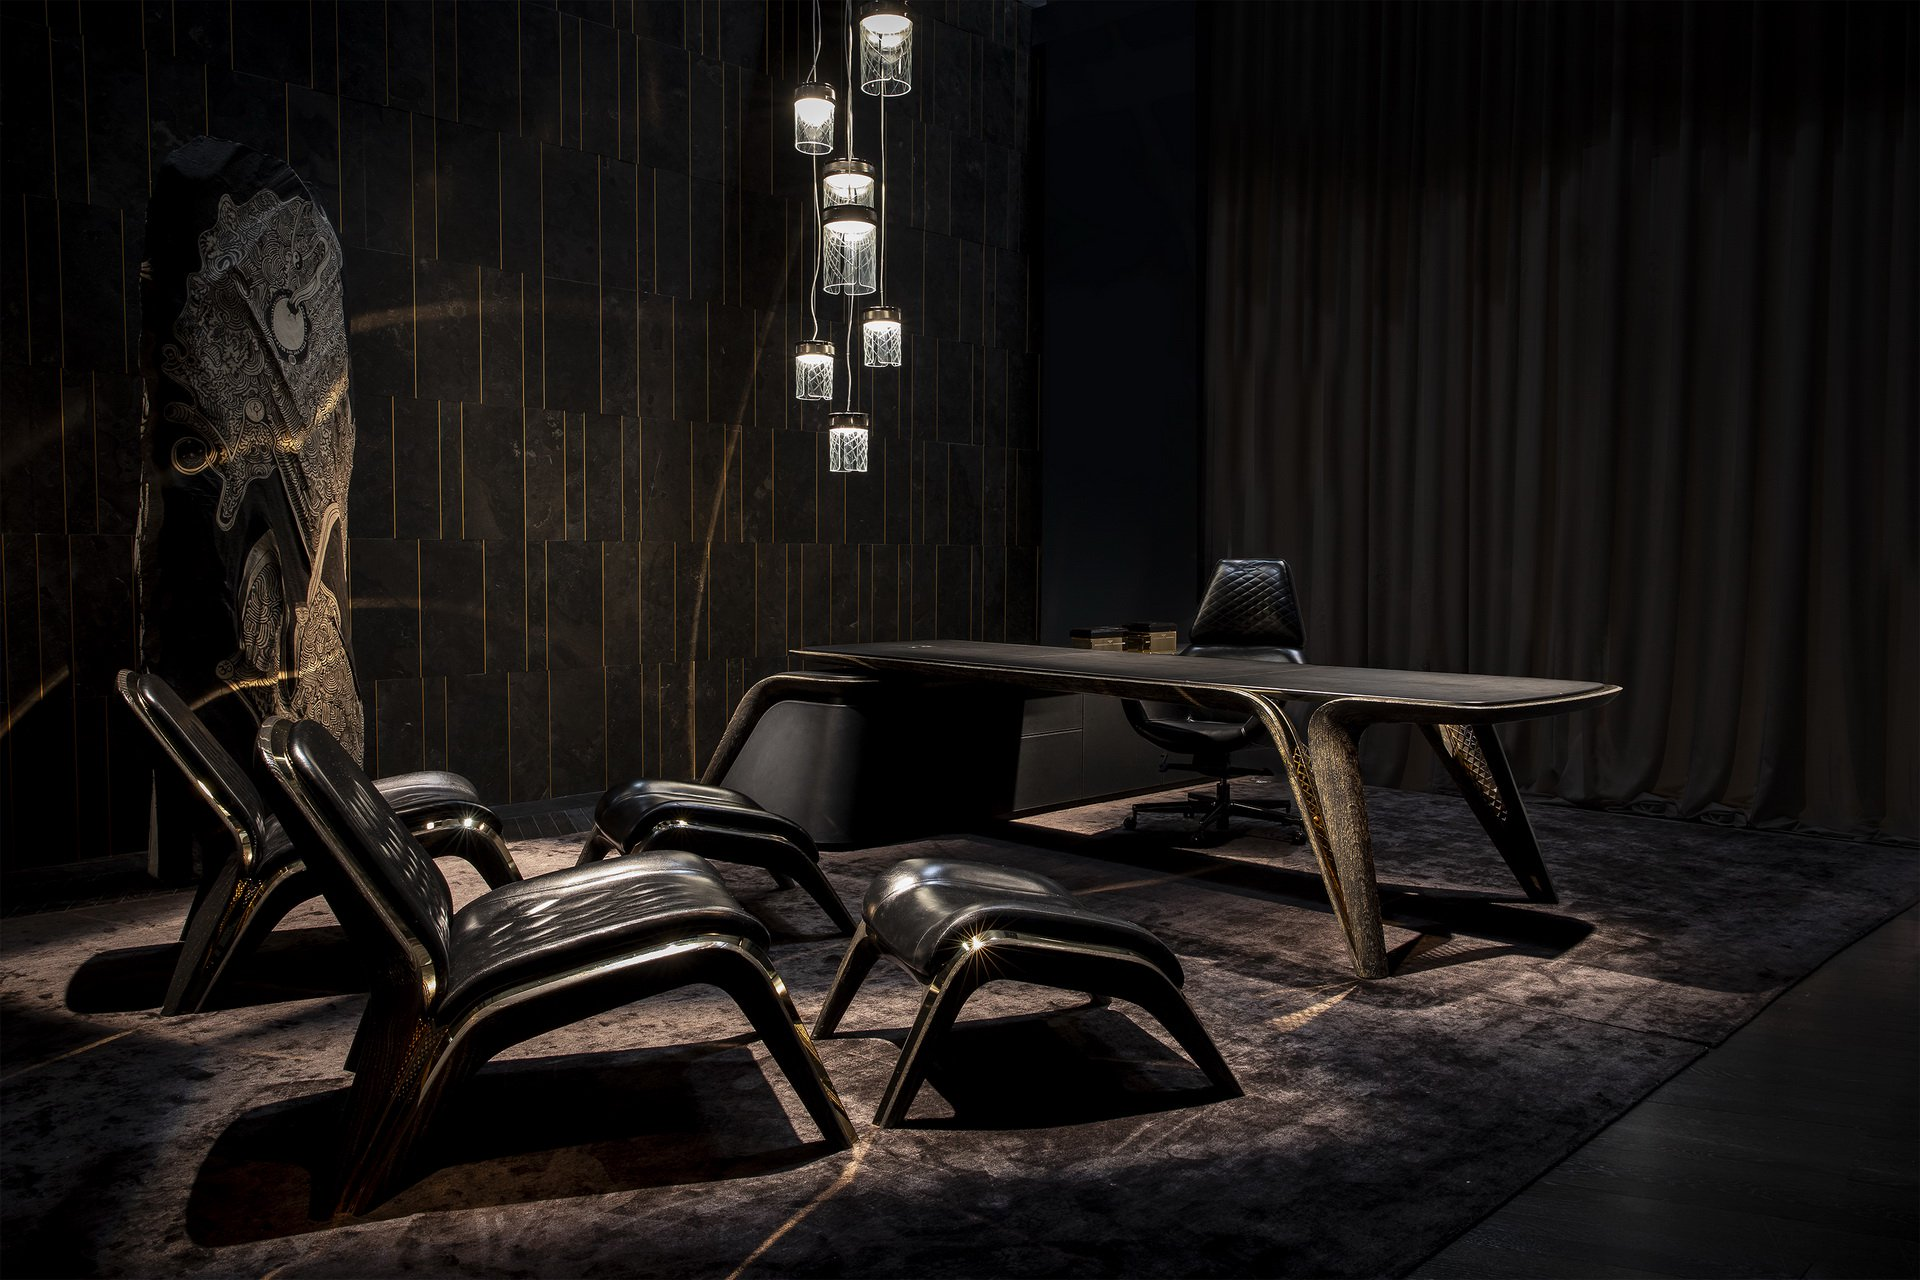 During the ongoing 2019 Milan Furniture Fair, Bentley has revealed a special furniture collection the company designed to celebrate its 100th birthday